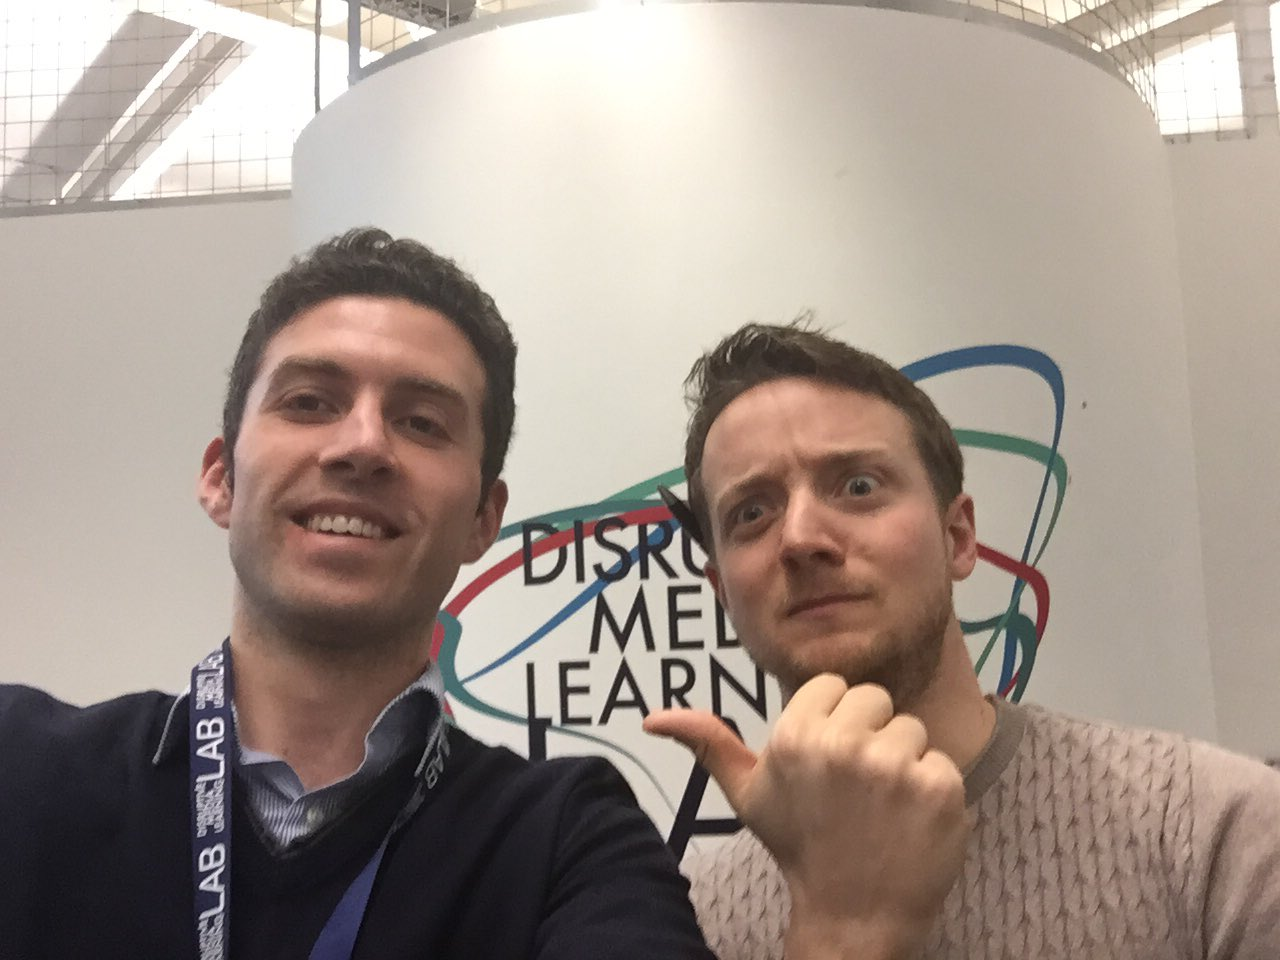 Great to finally meet former @SussexTEL team member @DurchTechNick at #PlayRemixed @disrupt_learn @sallyburruk https://t.co/WMzaHZiiJO